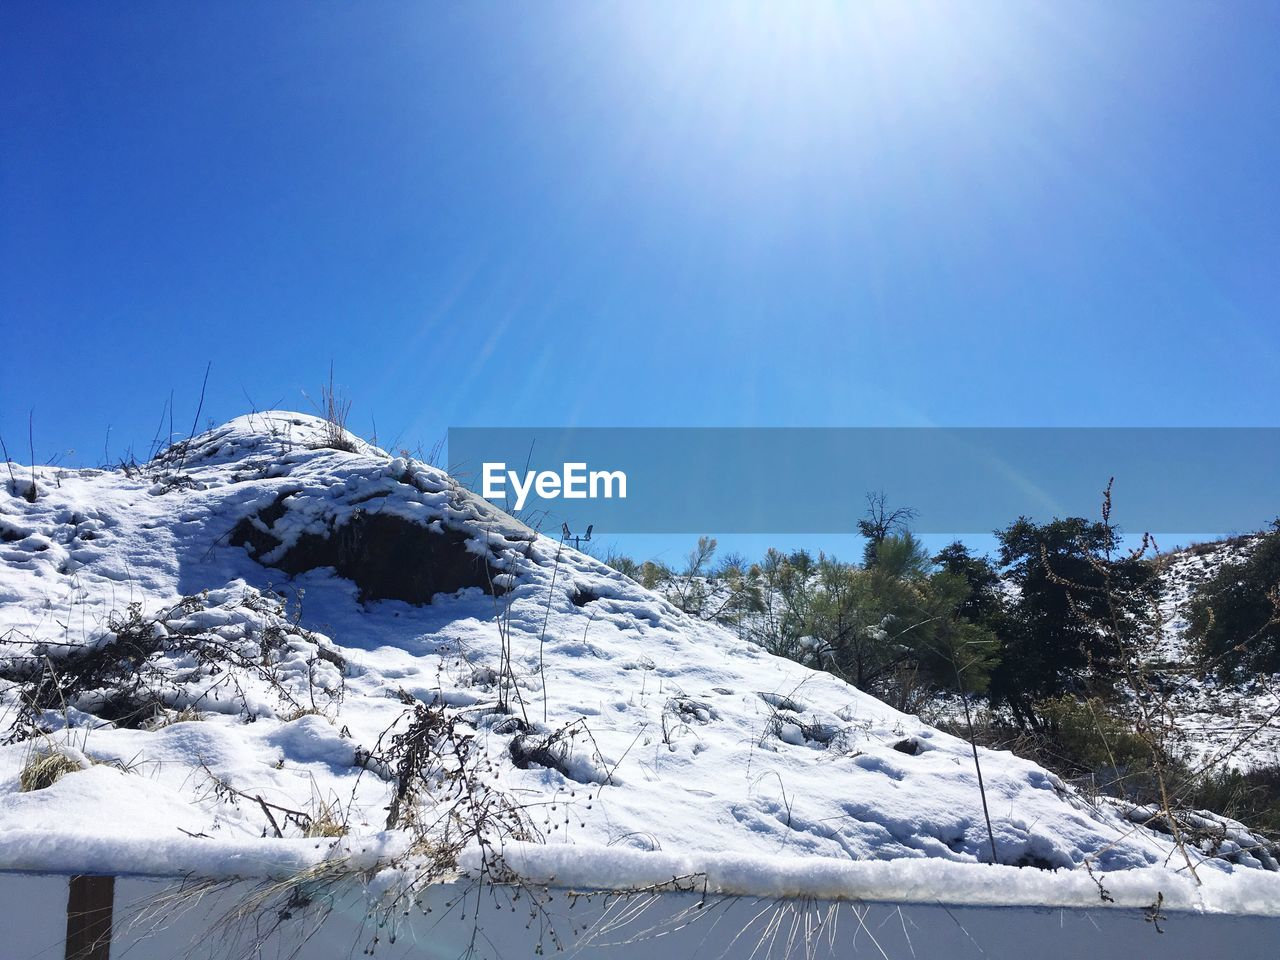 snow, cold temperature, winter, sky, beauty in nature, mountain, tranquility, sunlight, clear sky, scenics - nature, tranquil scene, day, nature, covering, blue, snowcapped mountain, plant, no people, non-urban scene, bright, mountain peak